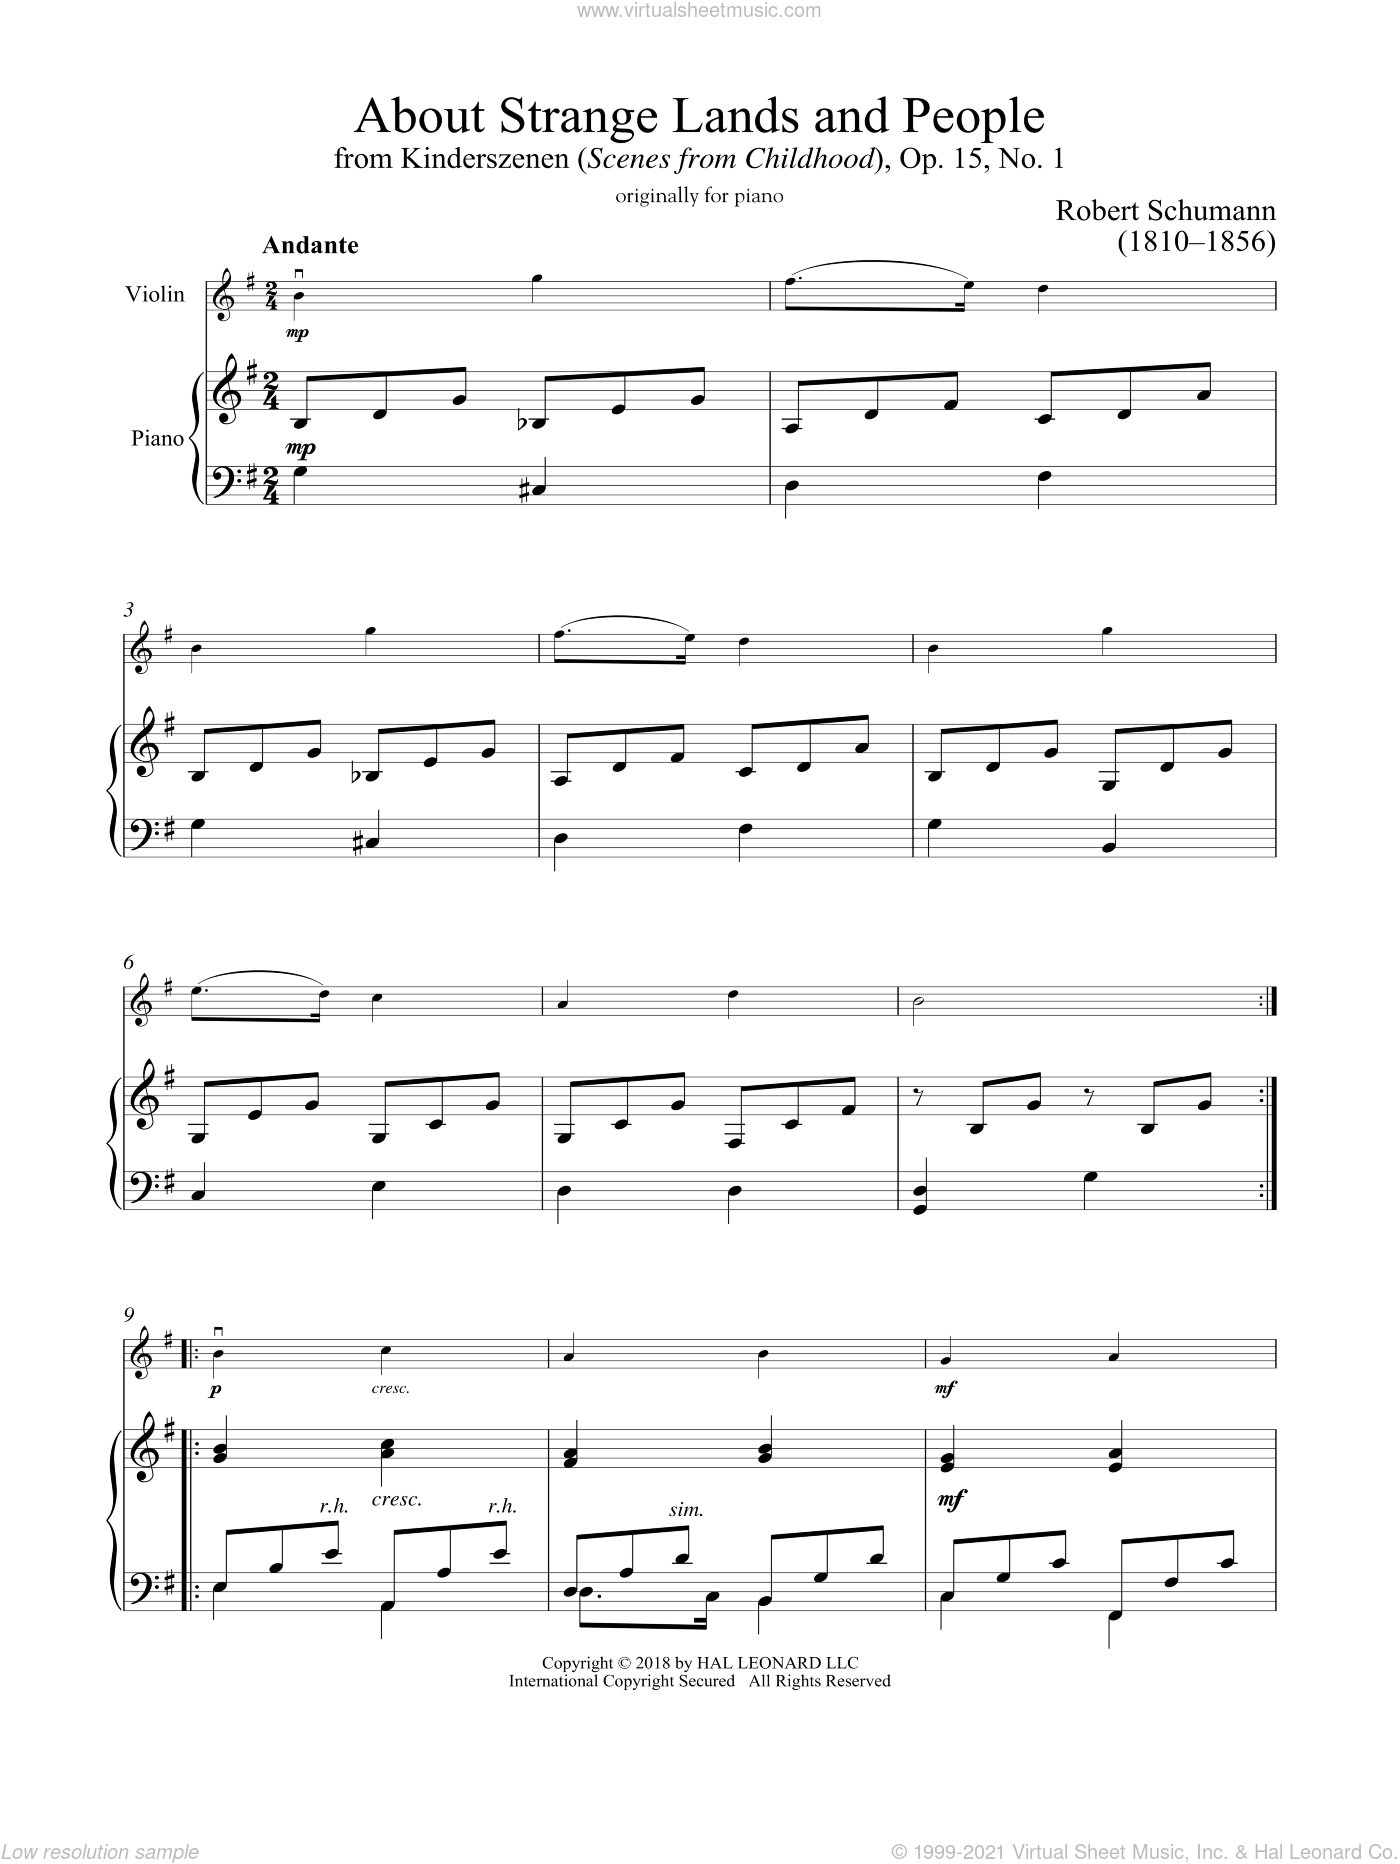 Of Strange Lands And People, Op. 15, No. 1 sheet music for violin and piano by Robert Schumann, classical score, intermediate skill level